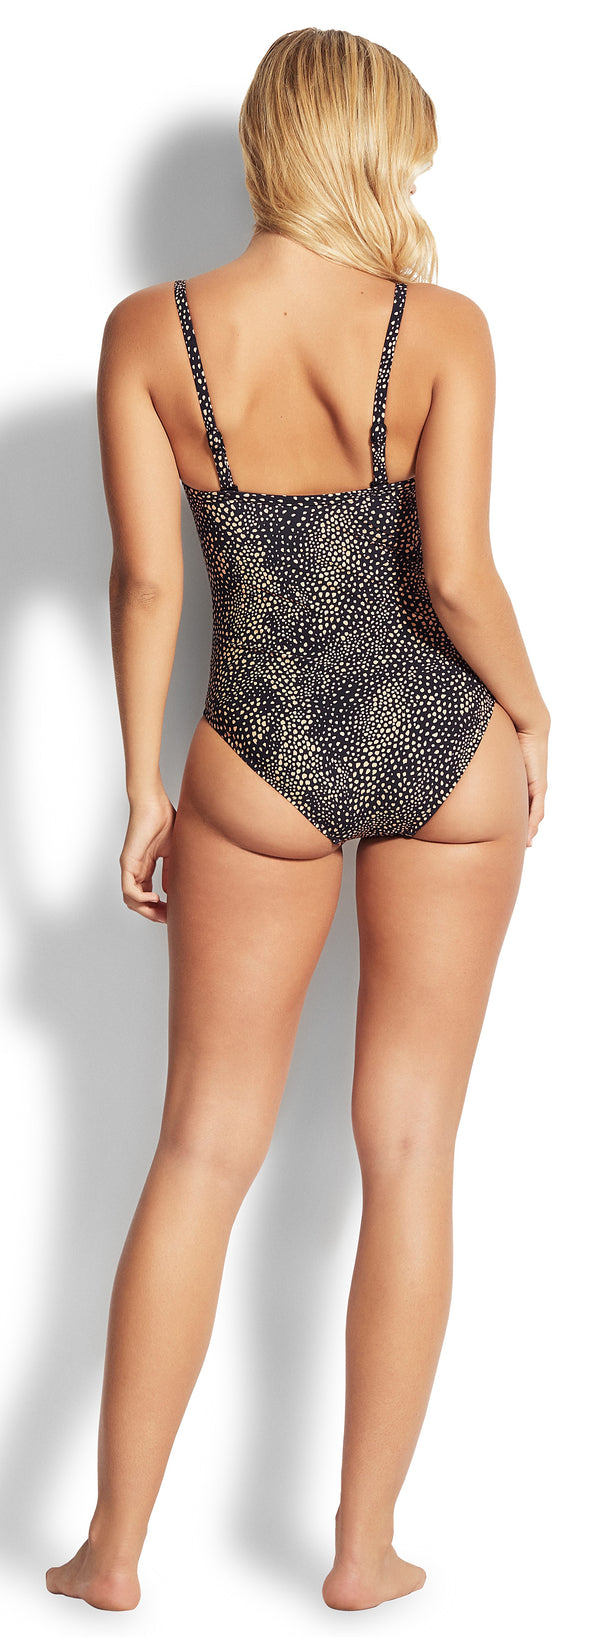 Safari Spot Sweetheart maillot